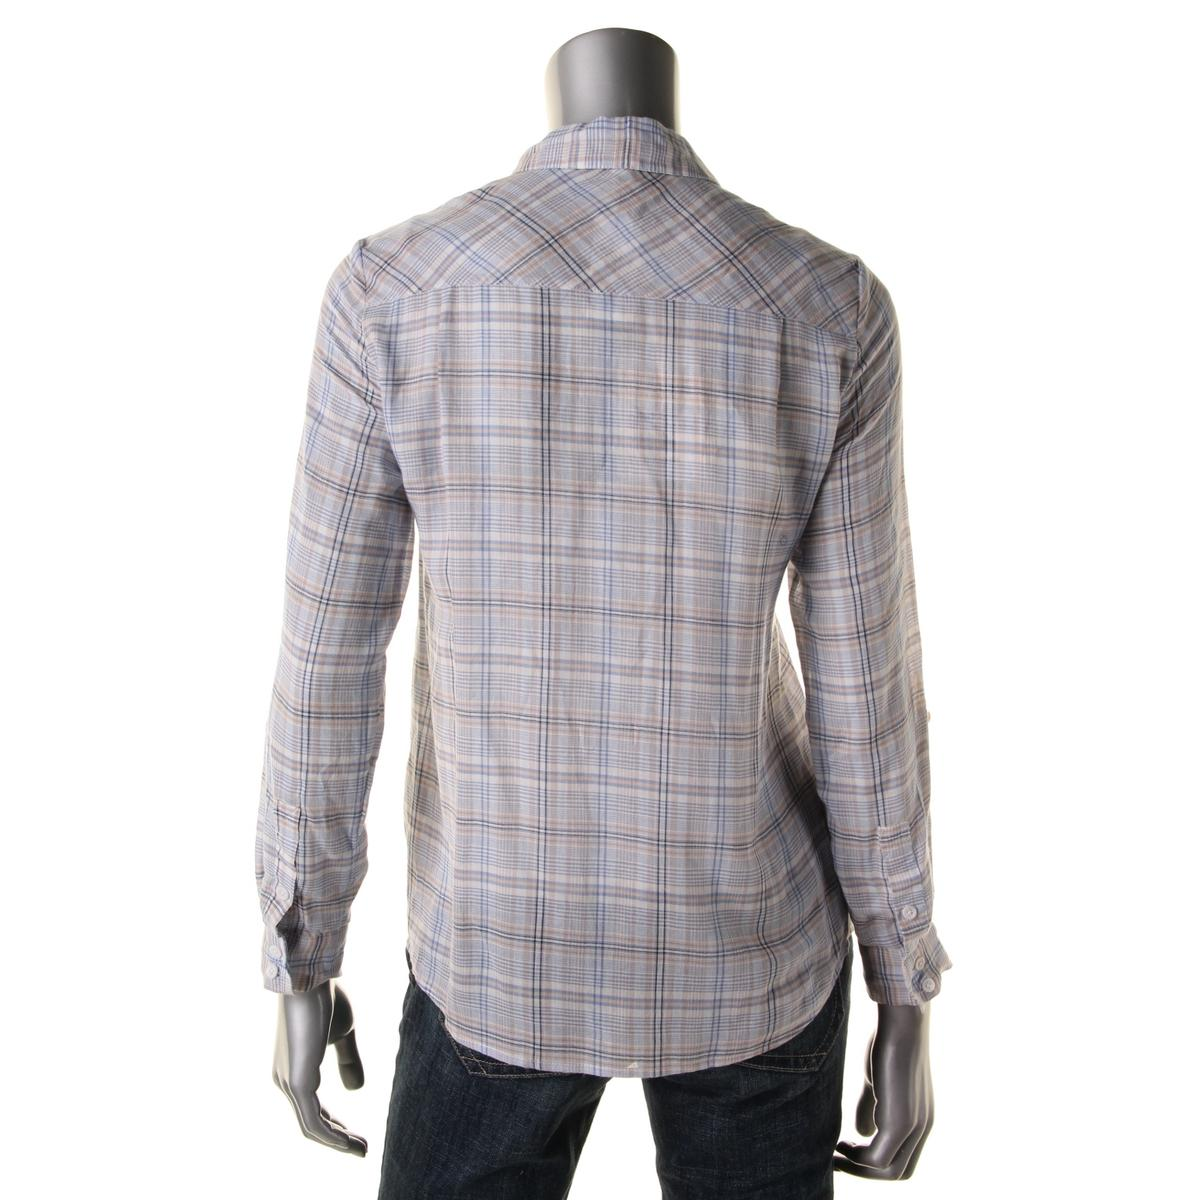 Soft joie 4540 womens sequoia cotton plaid blouse button for Soft joie plaid shirt